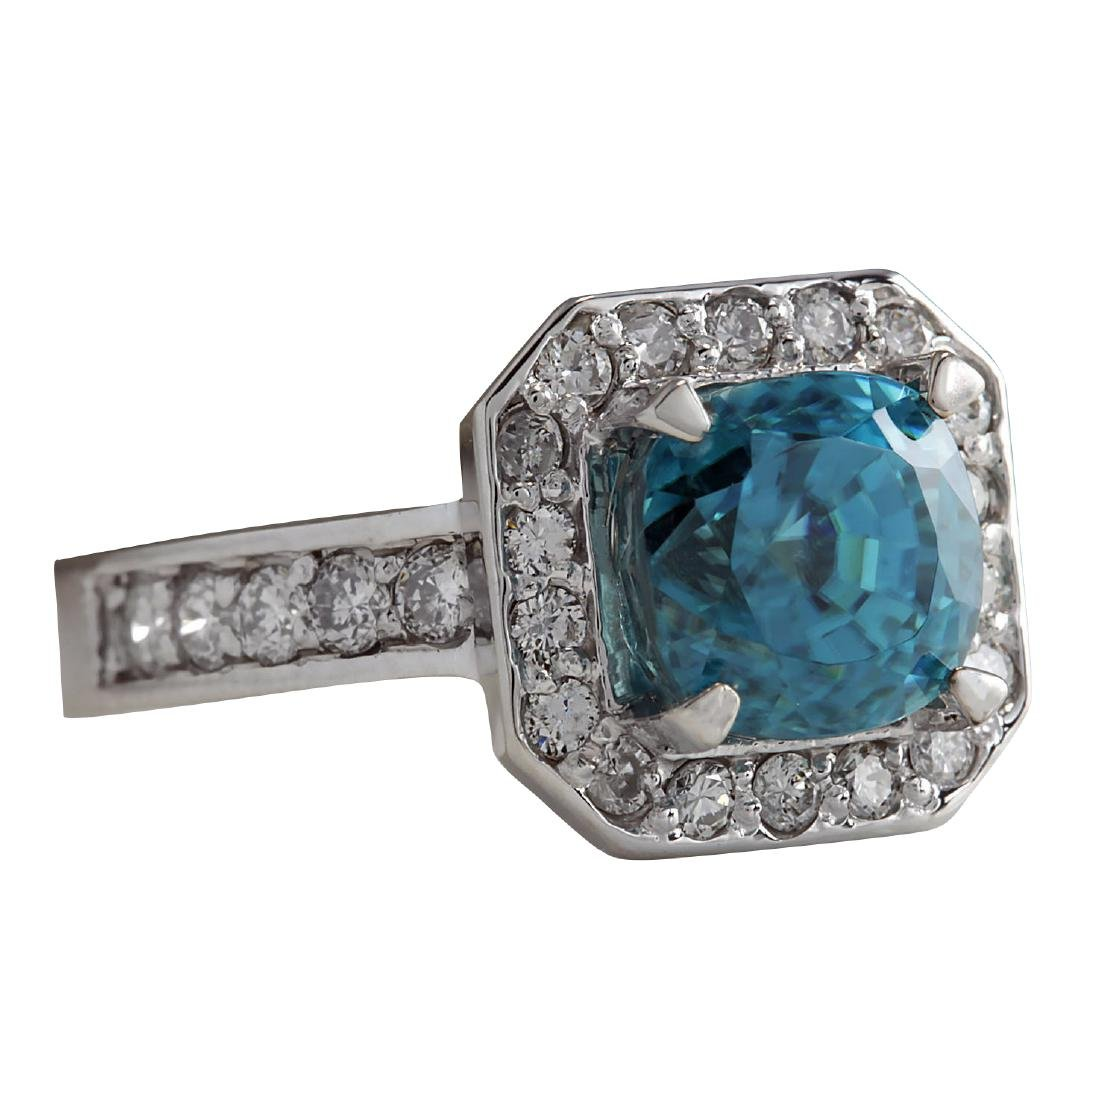 5.85CTW Natural Blue Zircon And Diamond Ring 18K Solid - 2